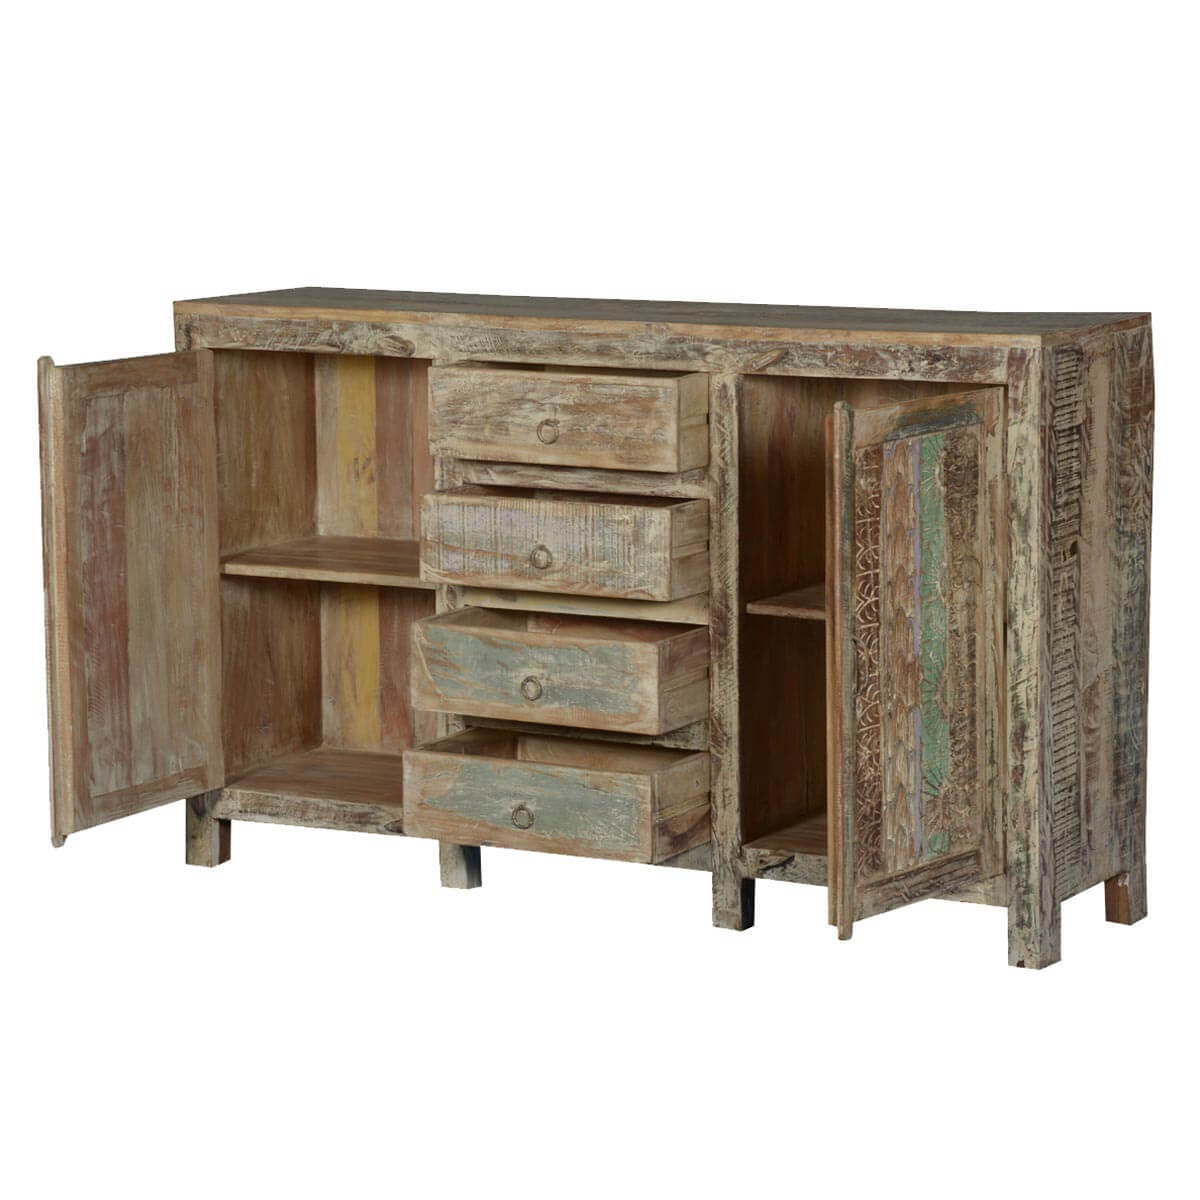 Frosted rustic reclaimed wood handcrafted drawer sideboard